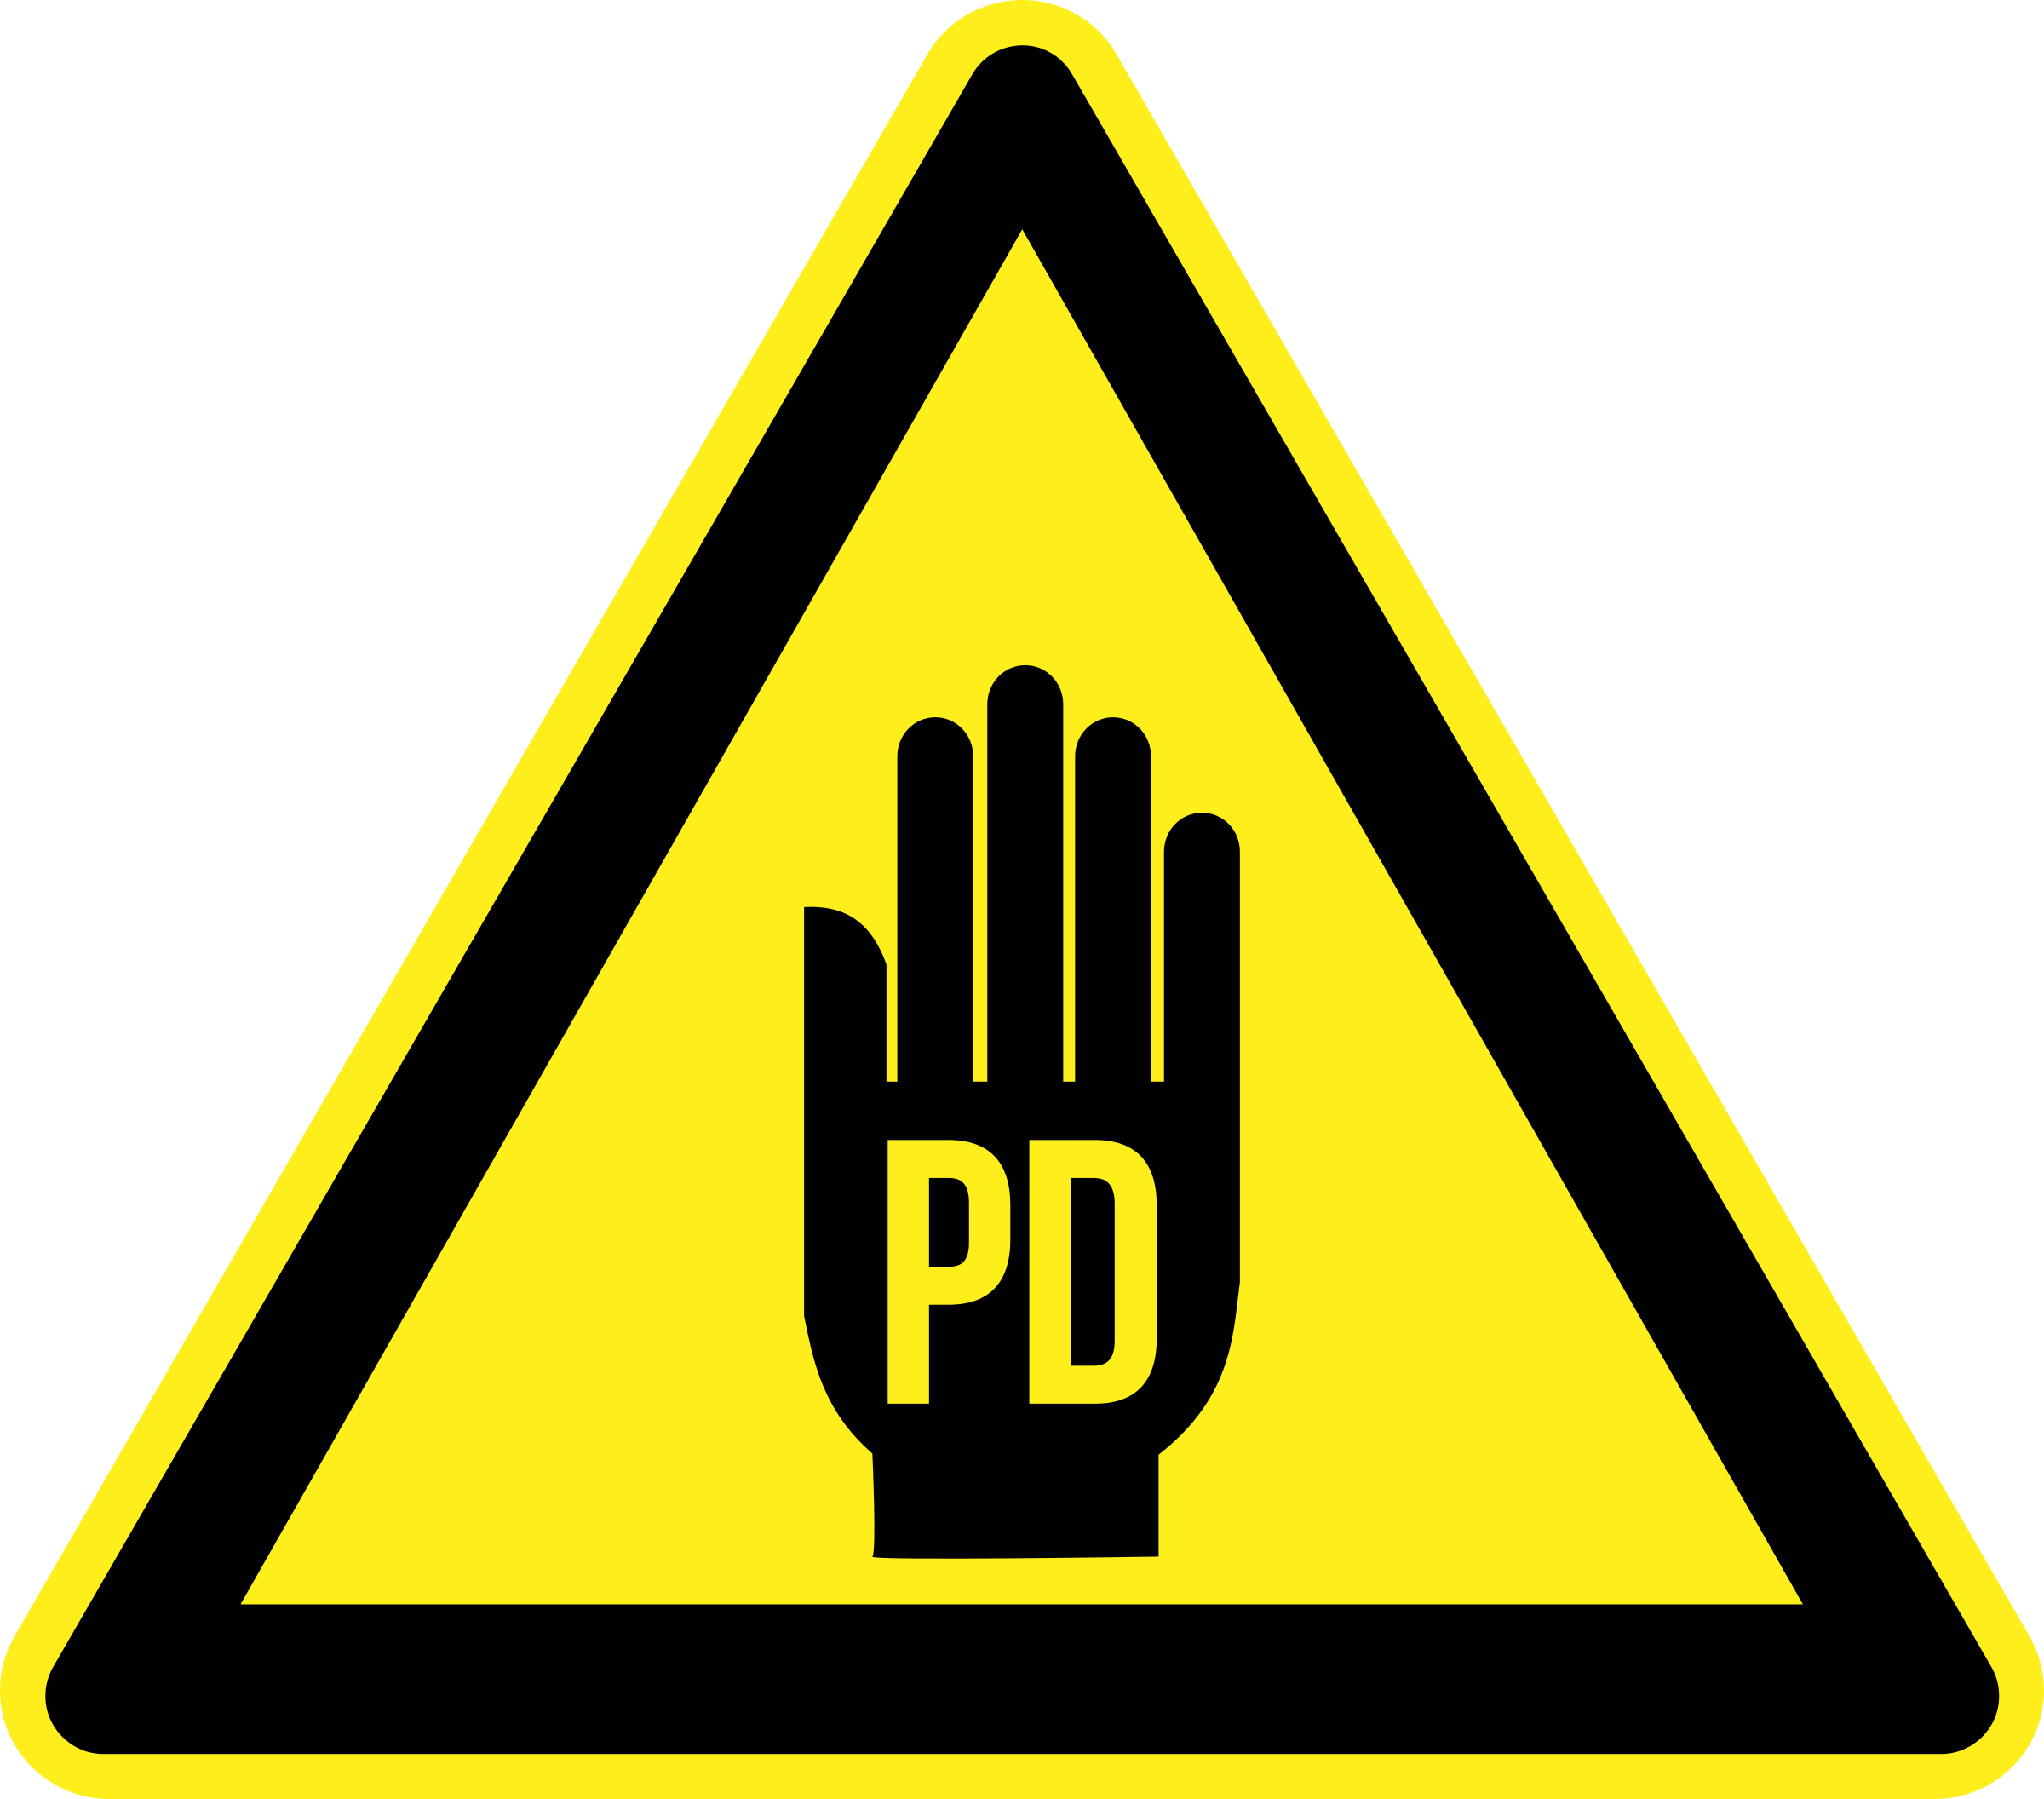 PD Issue Warning by kuba